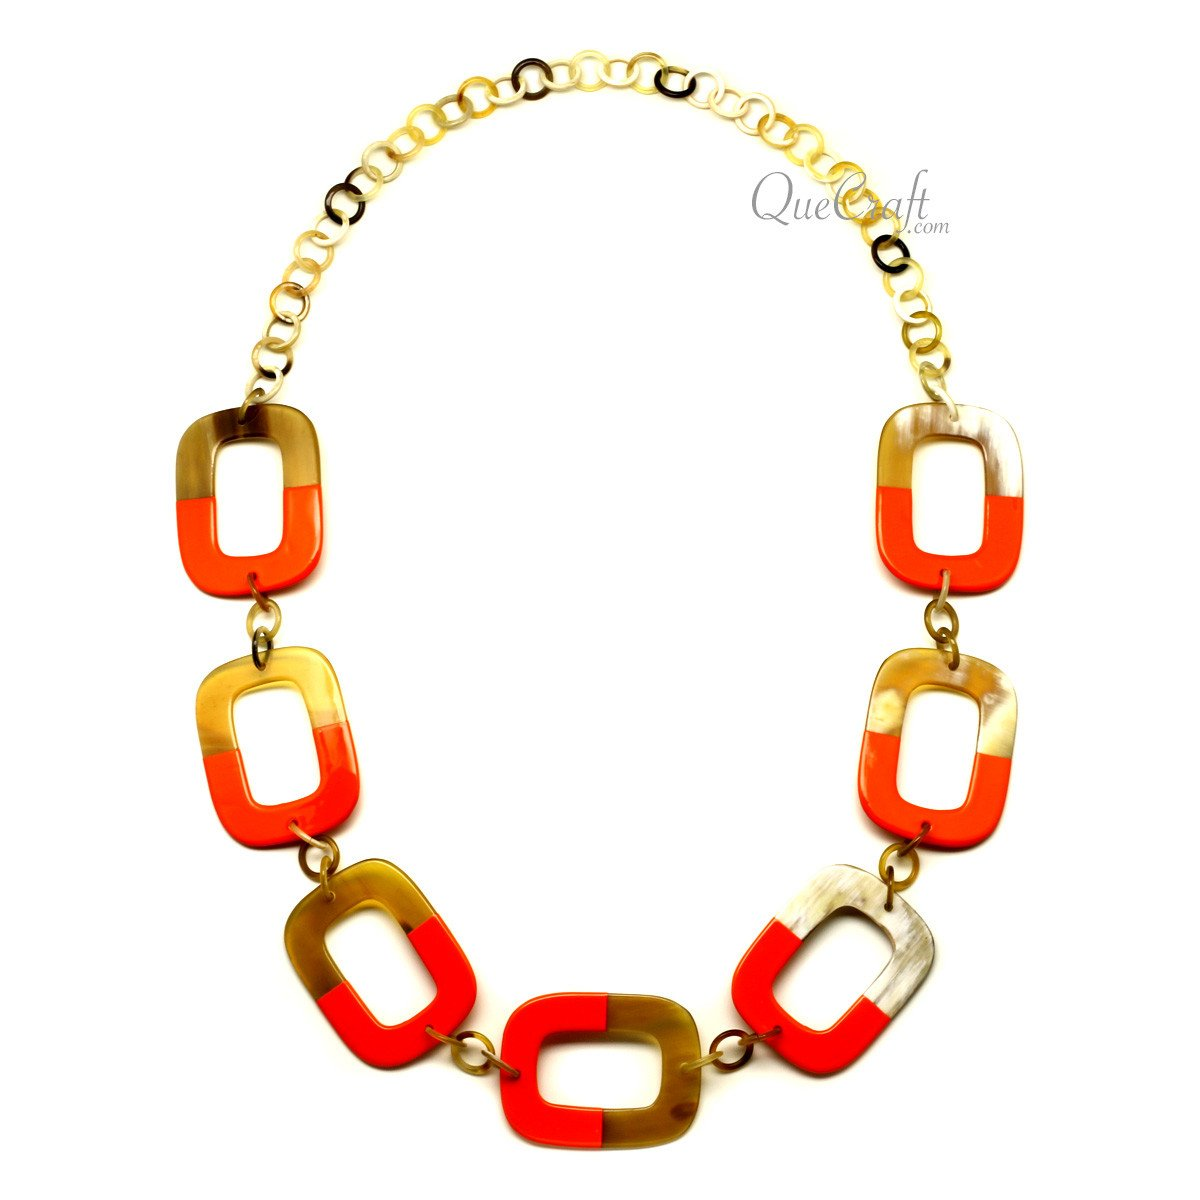 Horn & Lacquer Chain Necklace #12190 - HORN.JEWELRY